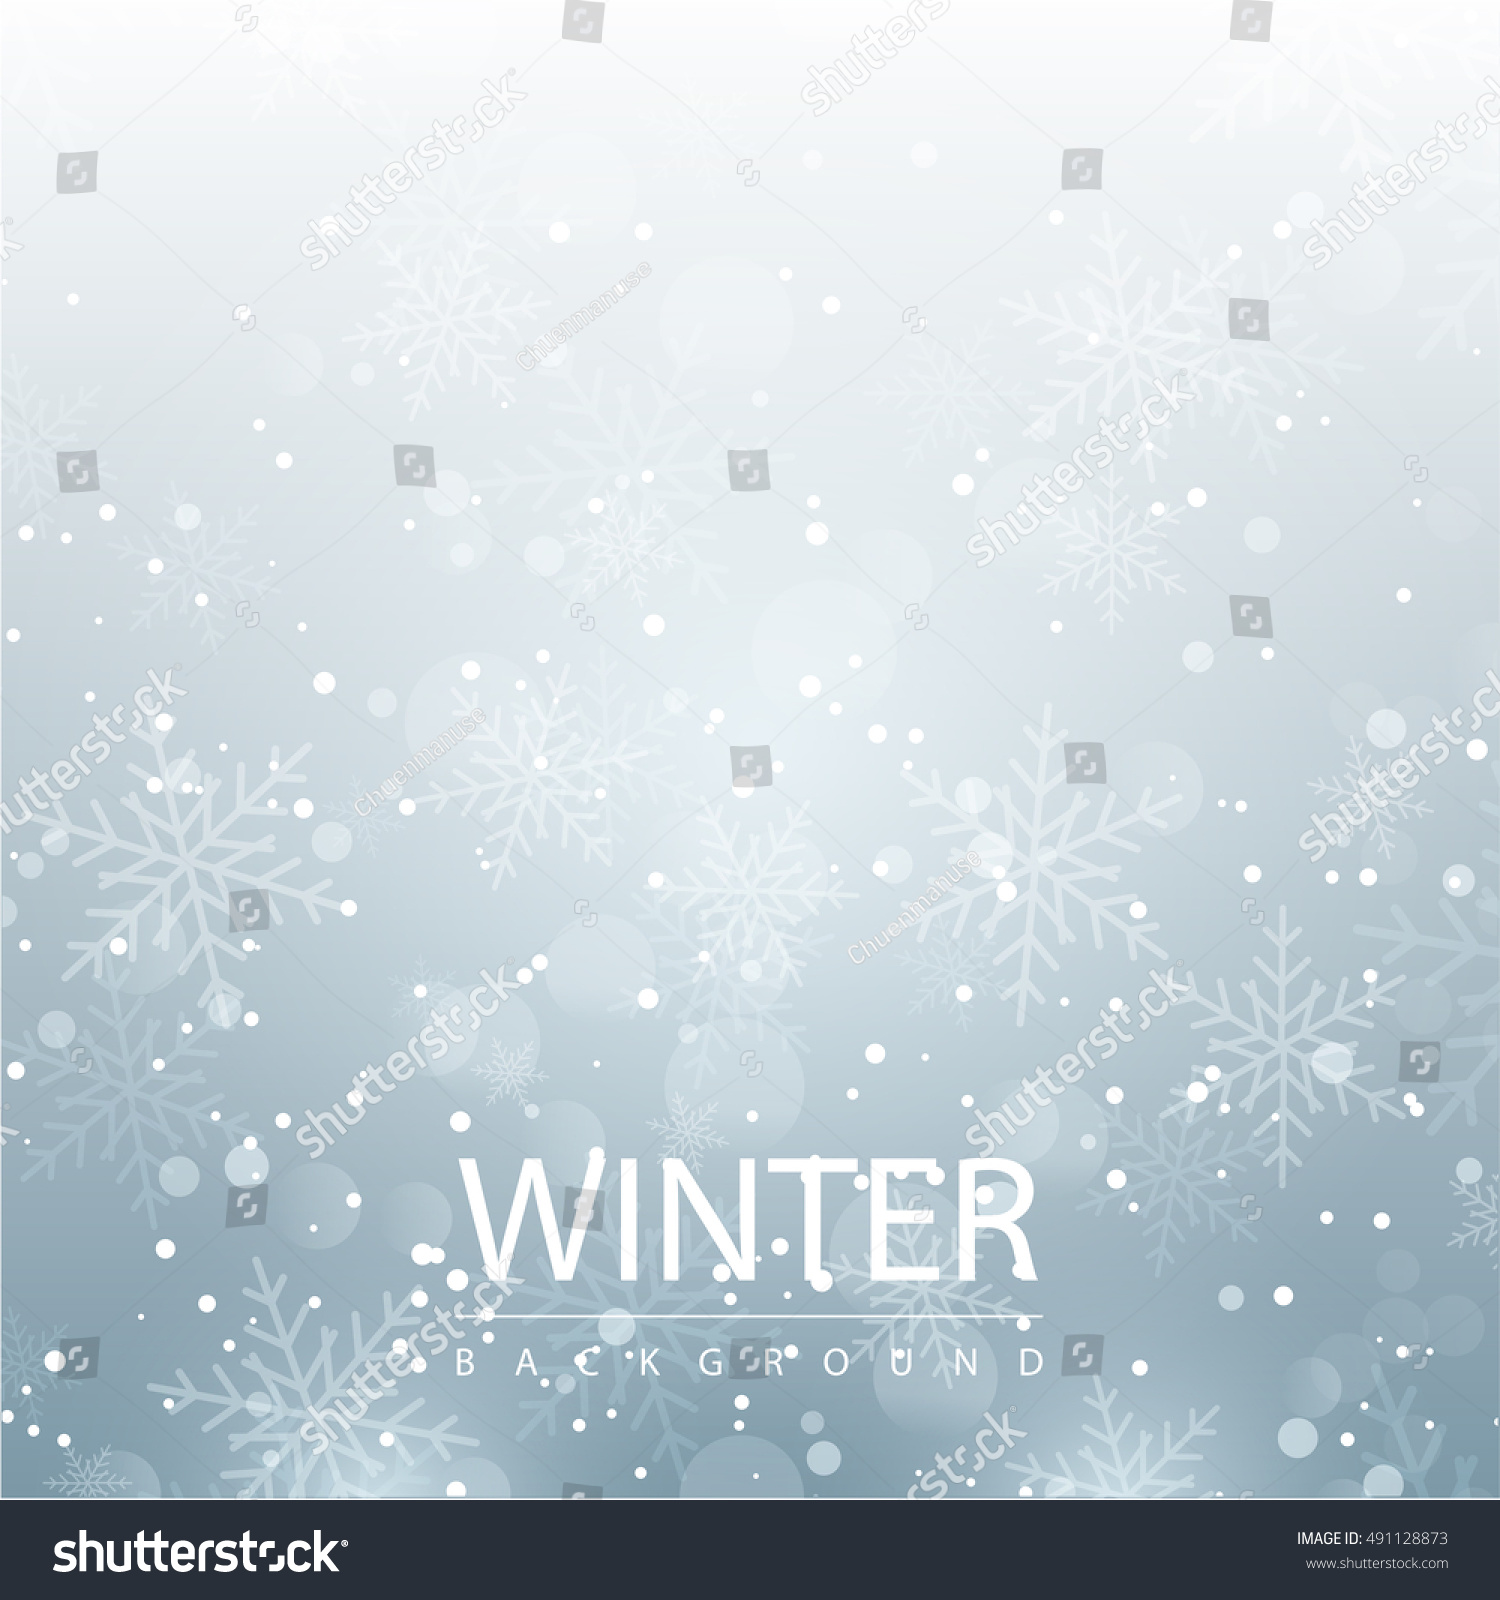 winter season background snow flake seasonal stock vector winter season background snow flake seasonal layout invitation poster business abstract illustration concept